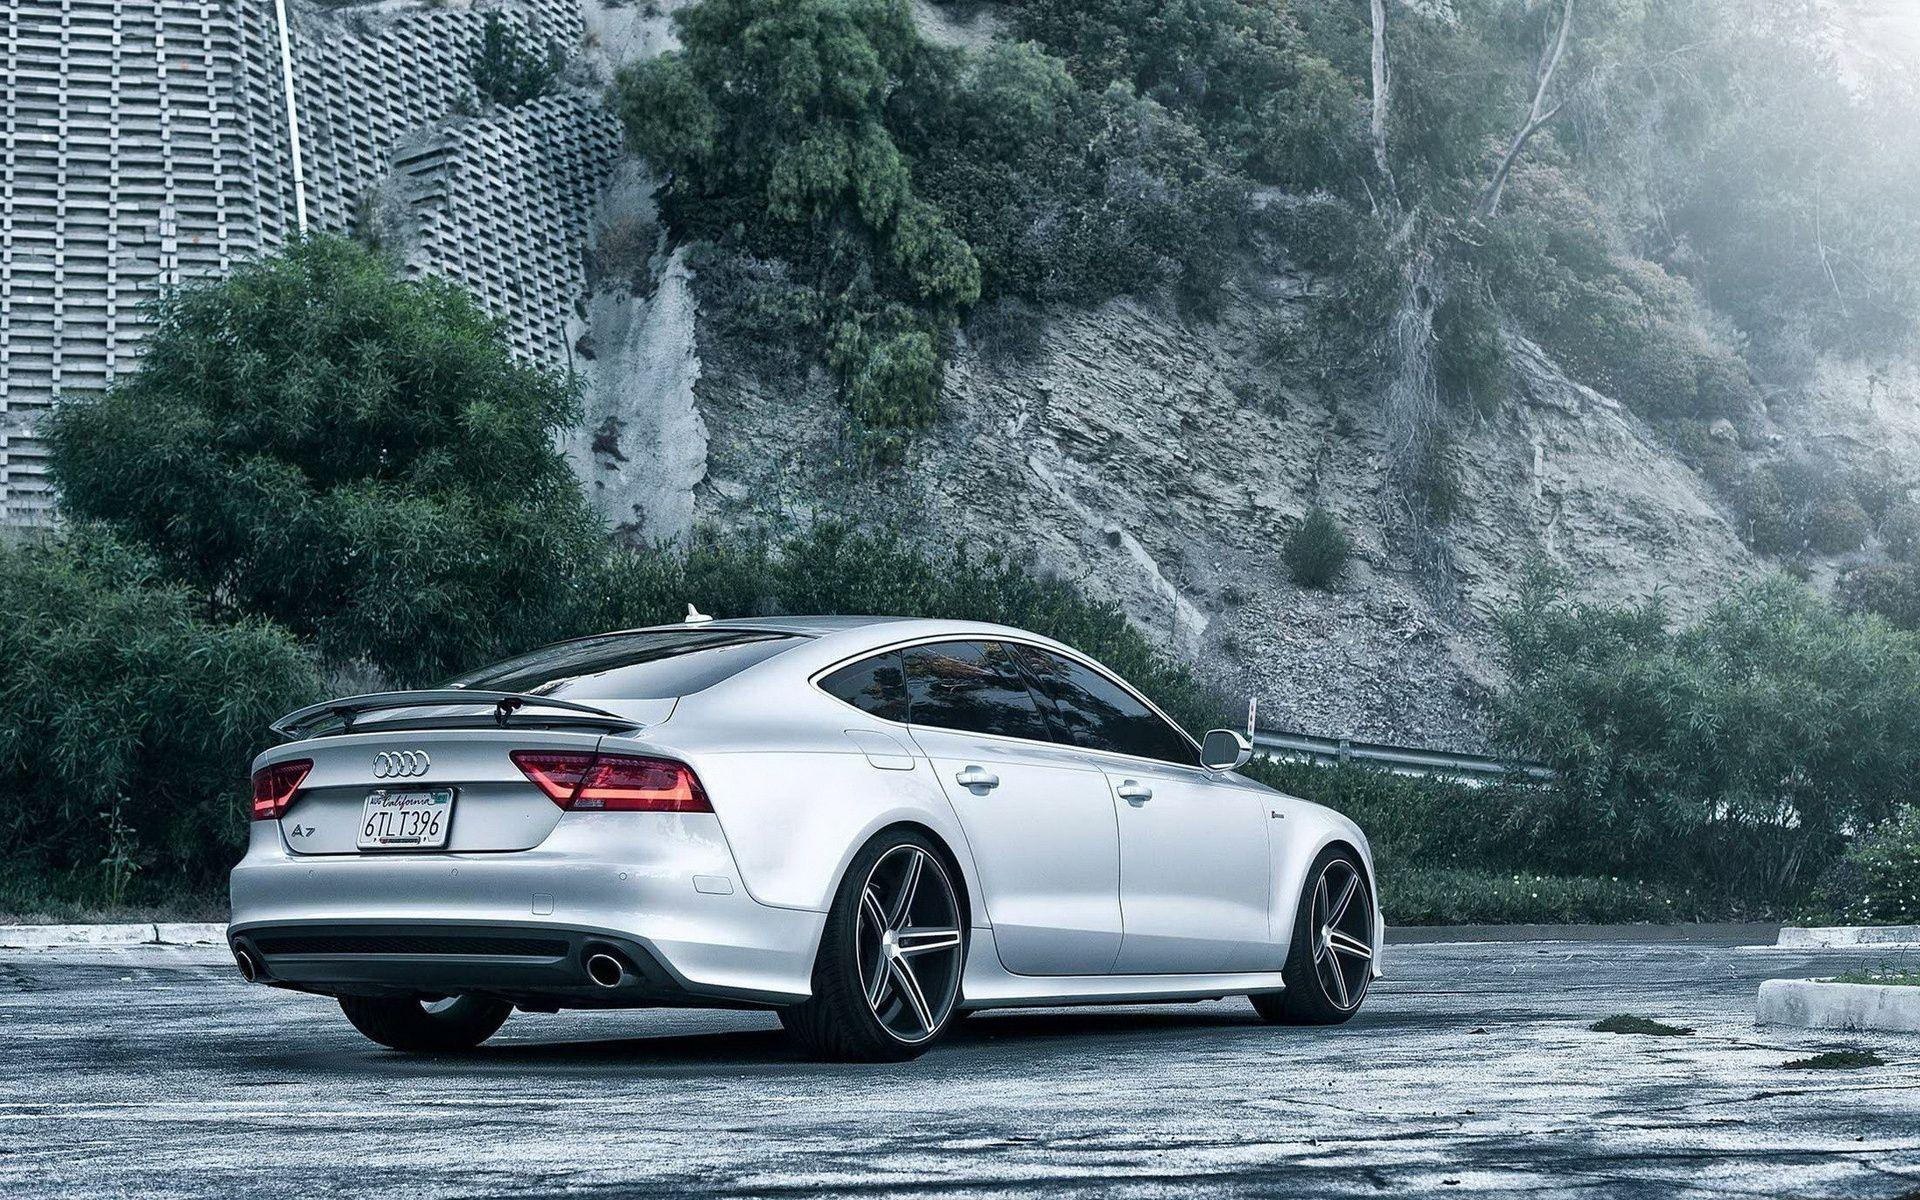 Audi S7 Wallpapers Top Free Audi S7 Backgrounds Wallpaperaccess